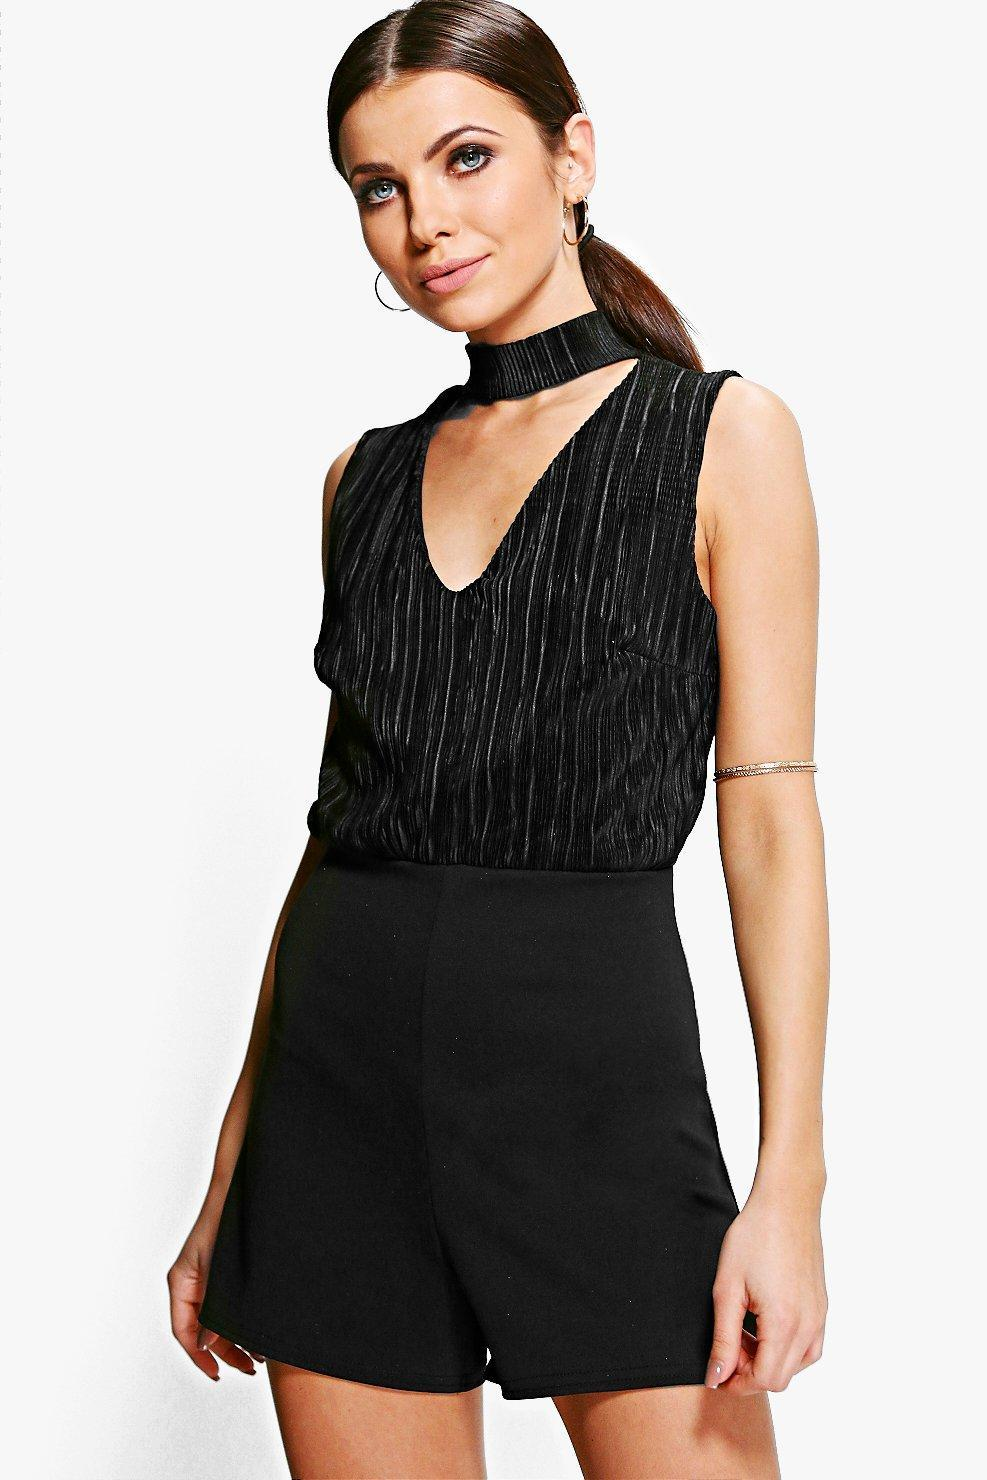 Plus Size & Curve Playsuits and Jumpsuits All in one is the new to go! Check out our selection of plus size jumpsuits. Classy and dressed up or very casual and easy going, there's a style for you!